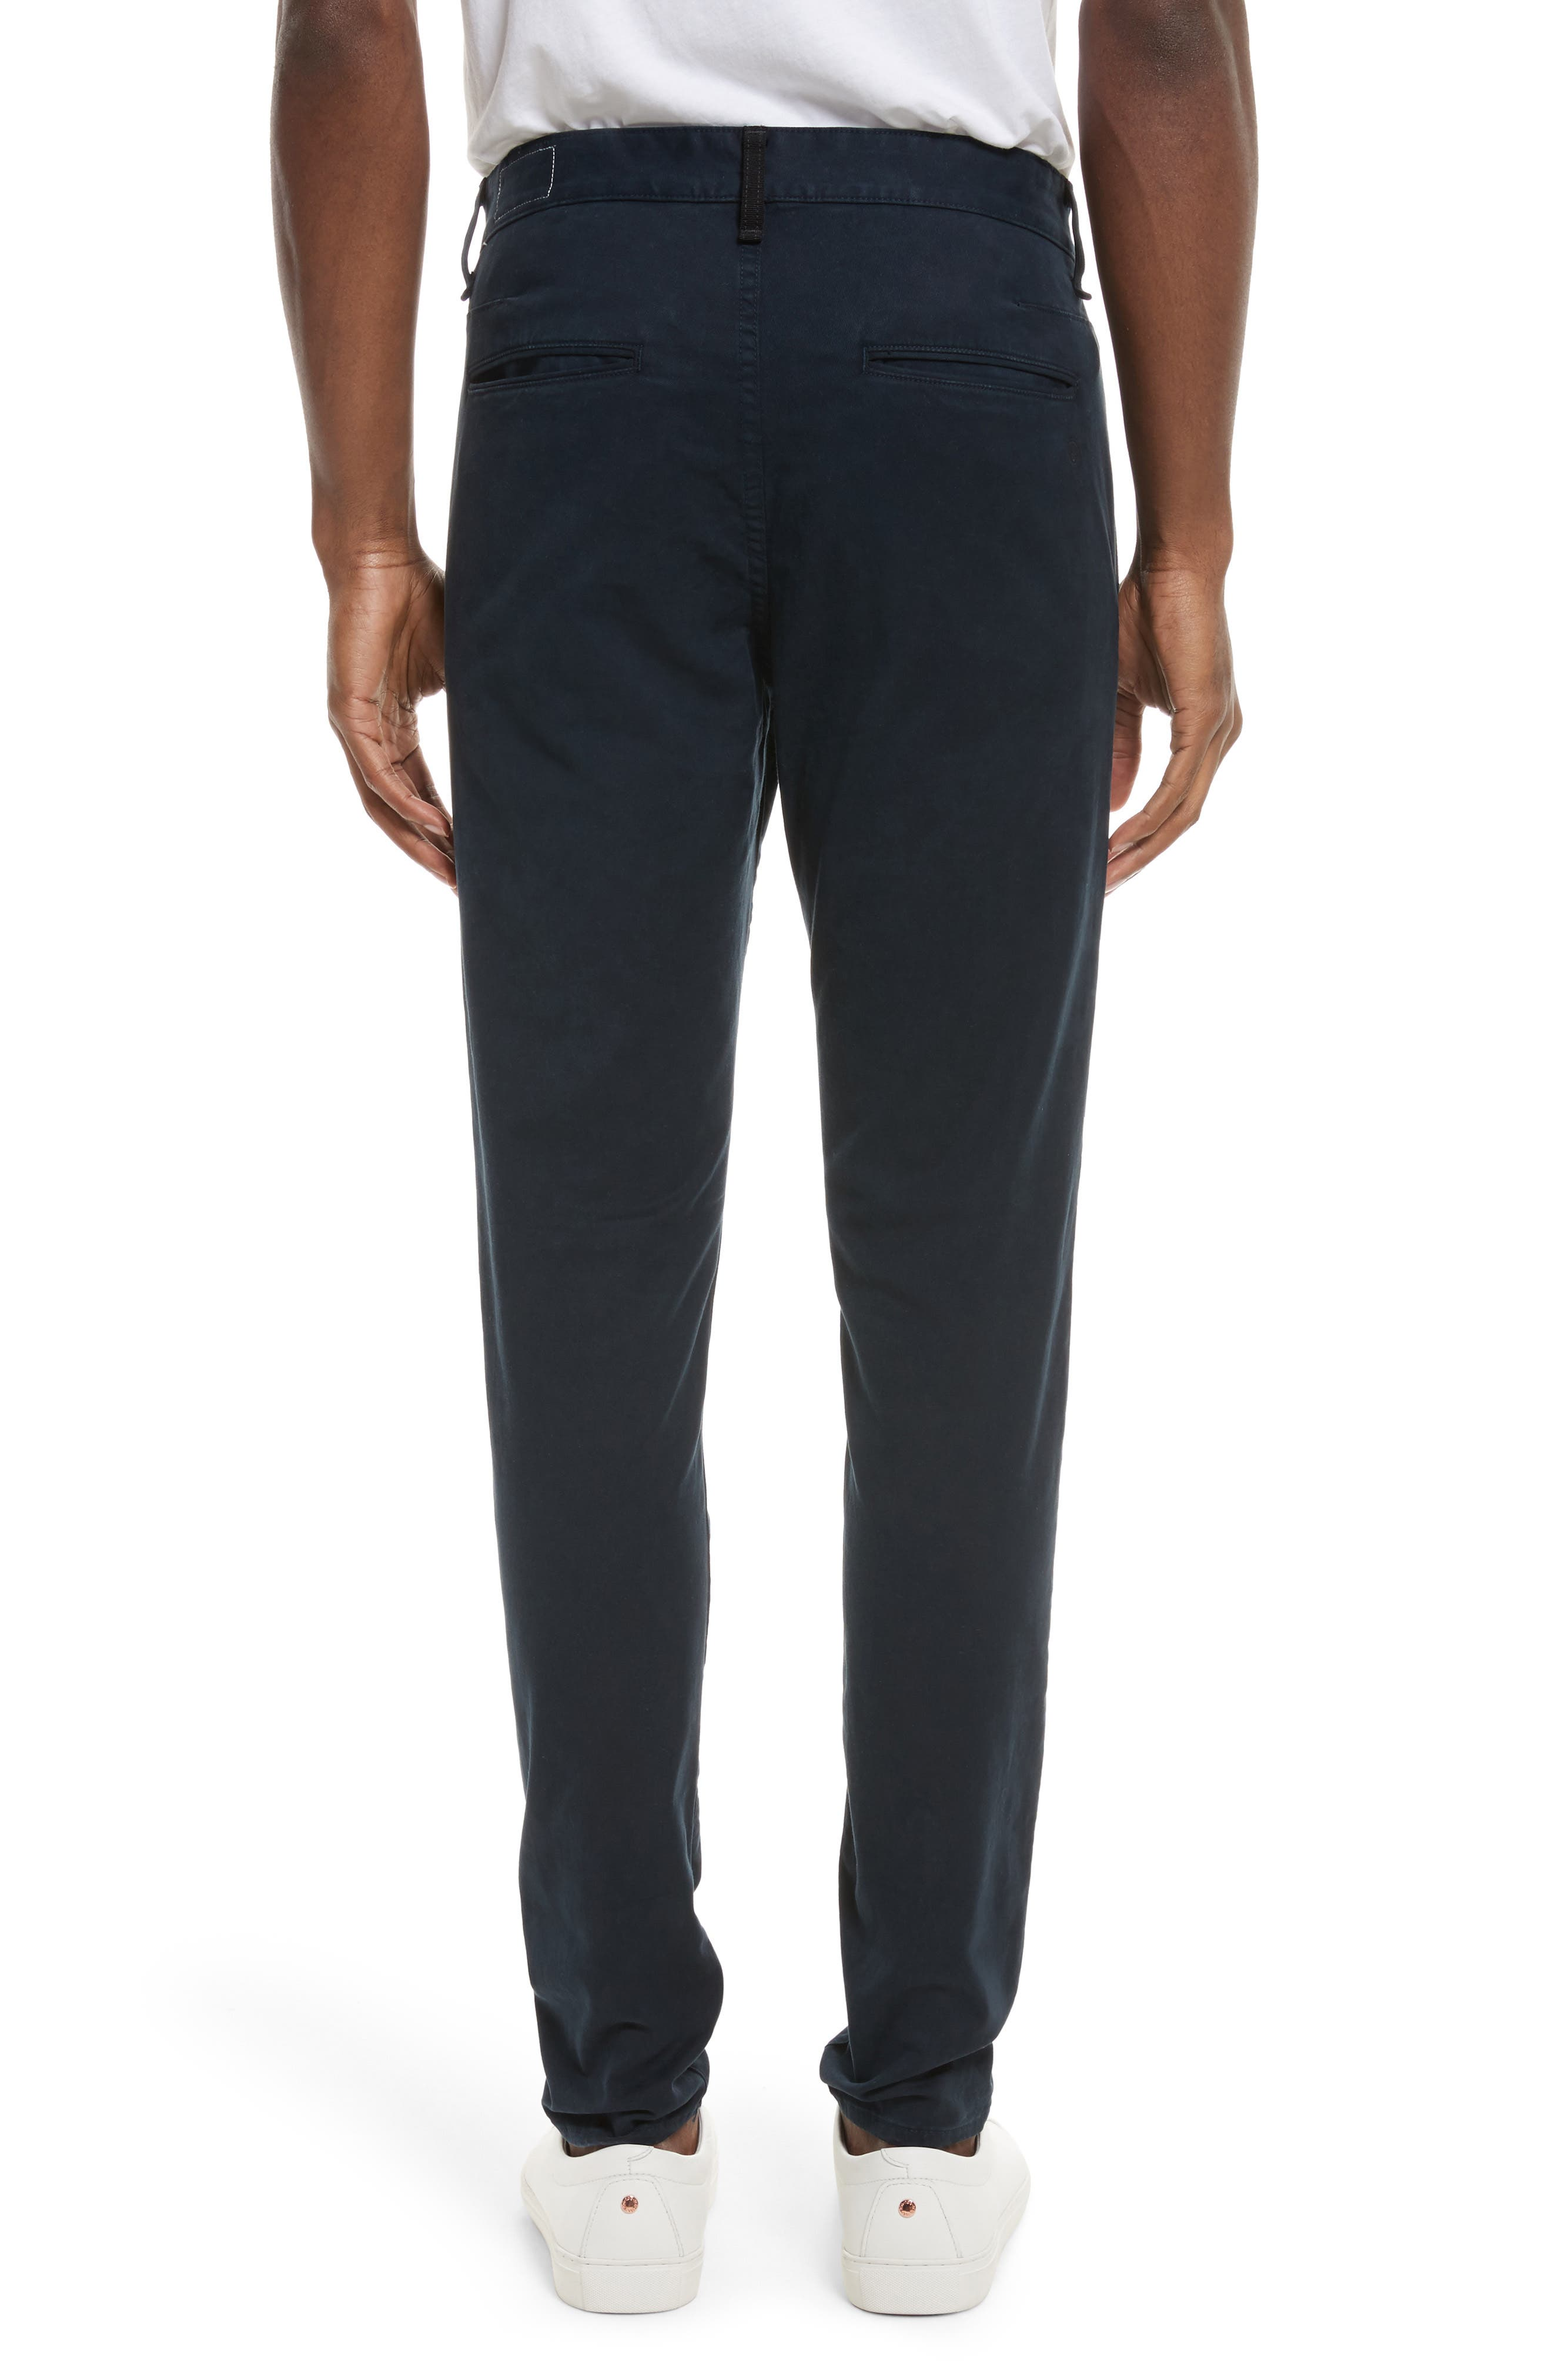 Fit 1 Chinos,                             Alternate thumbnail 2, color,                             NAVY